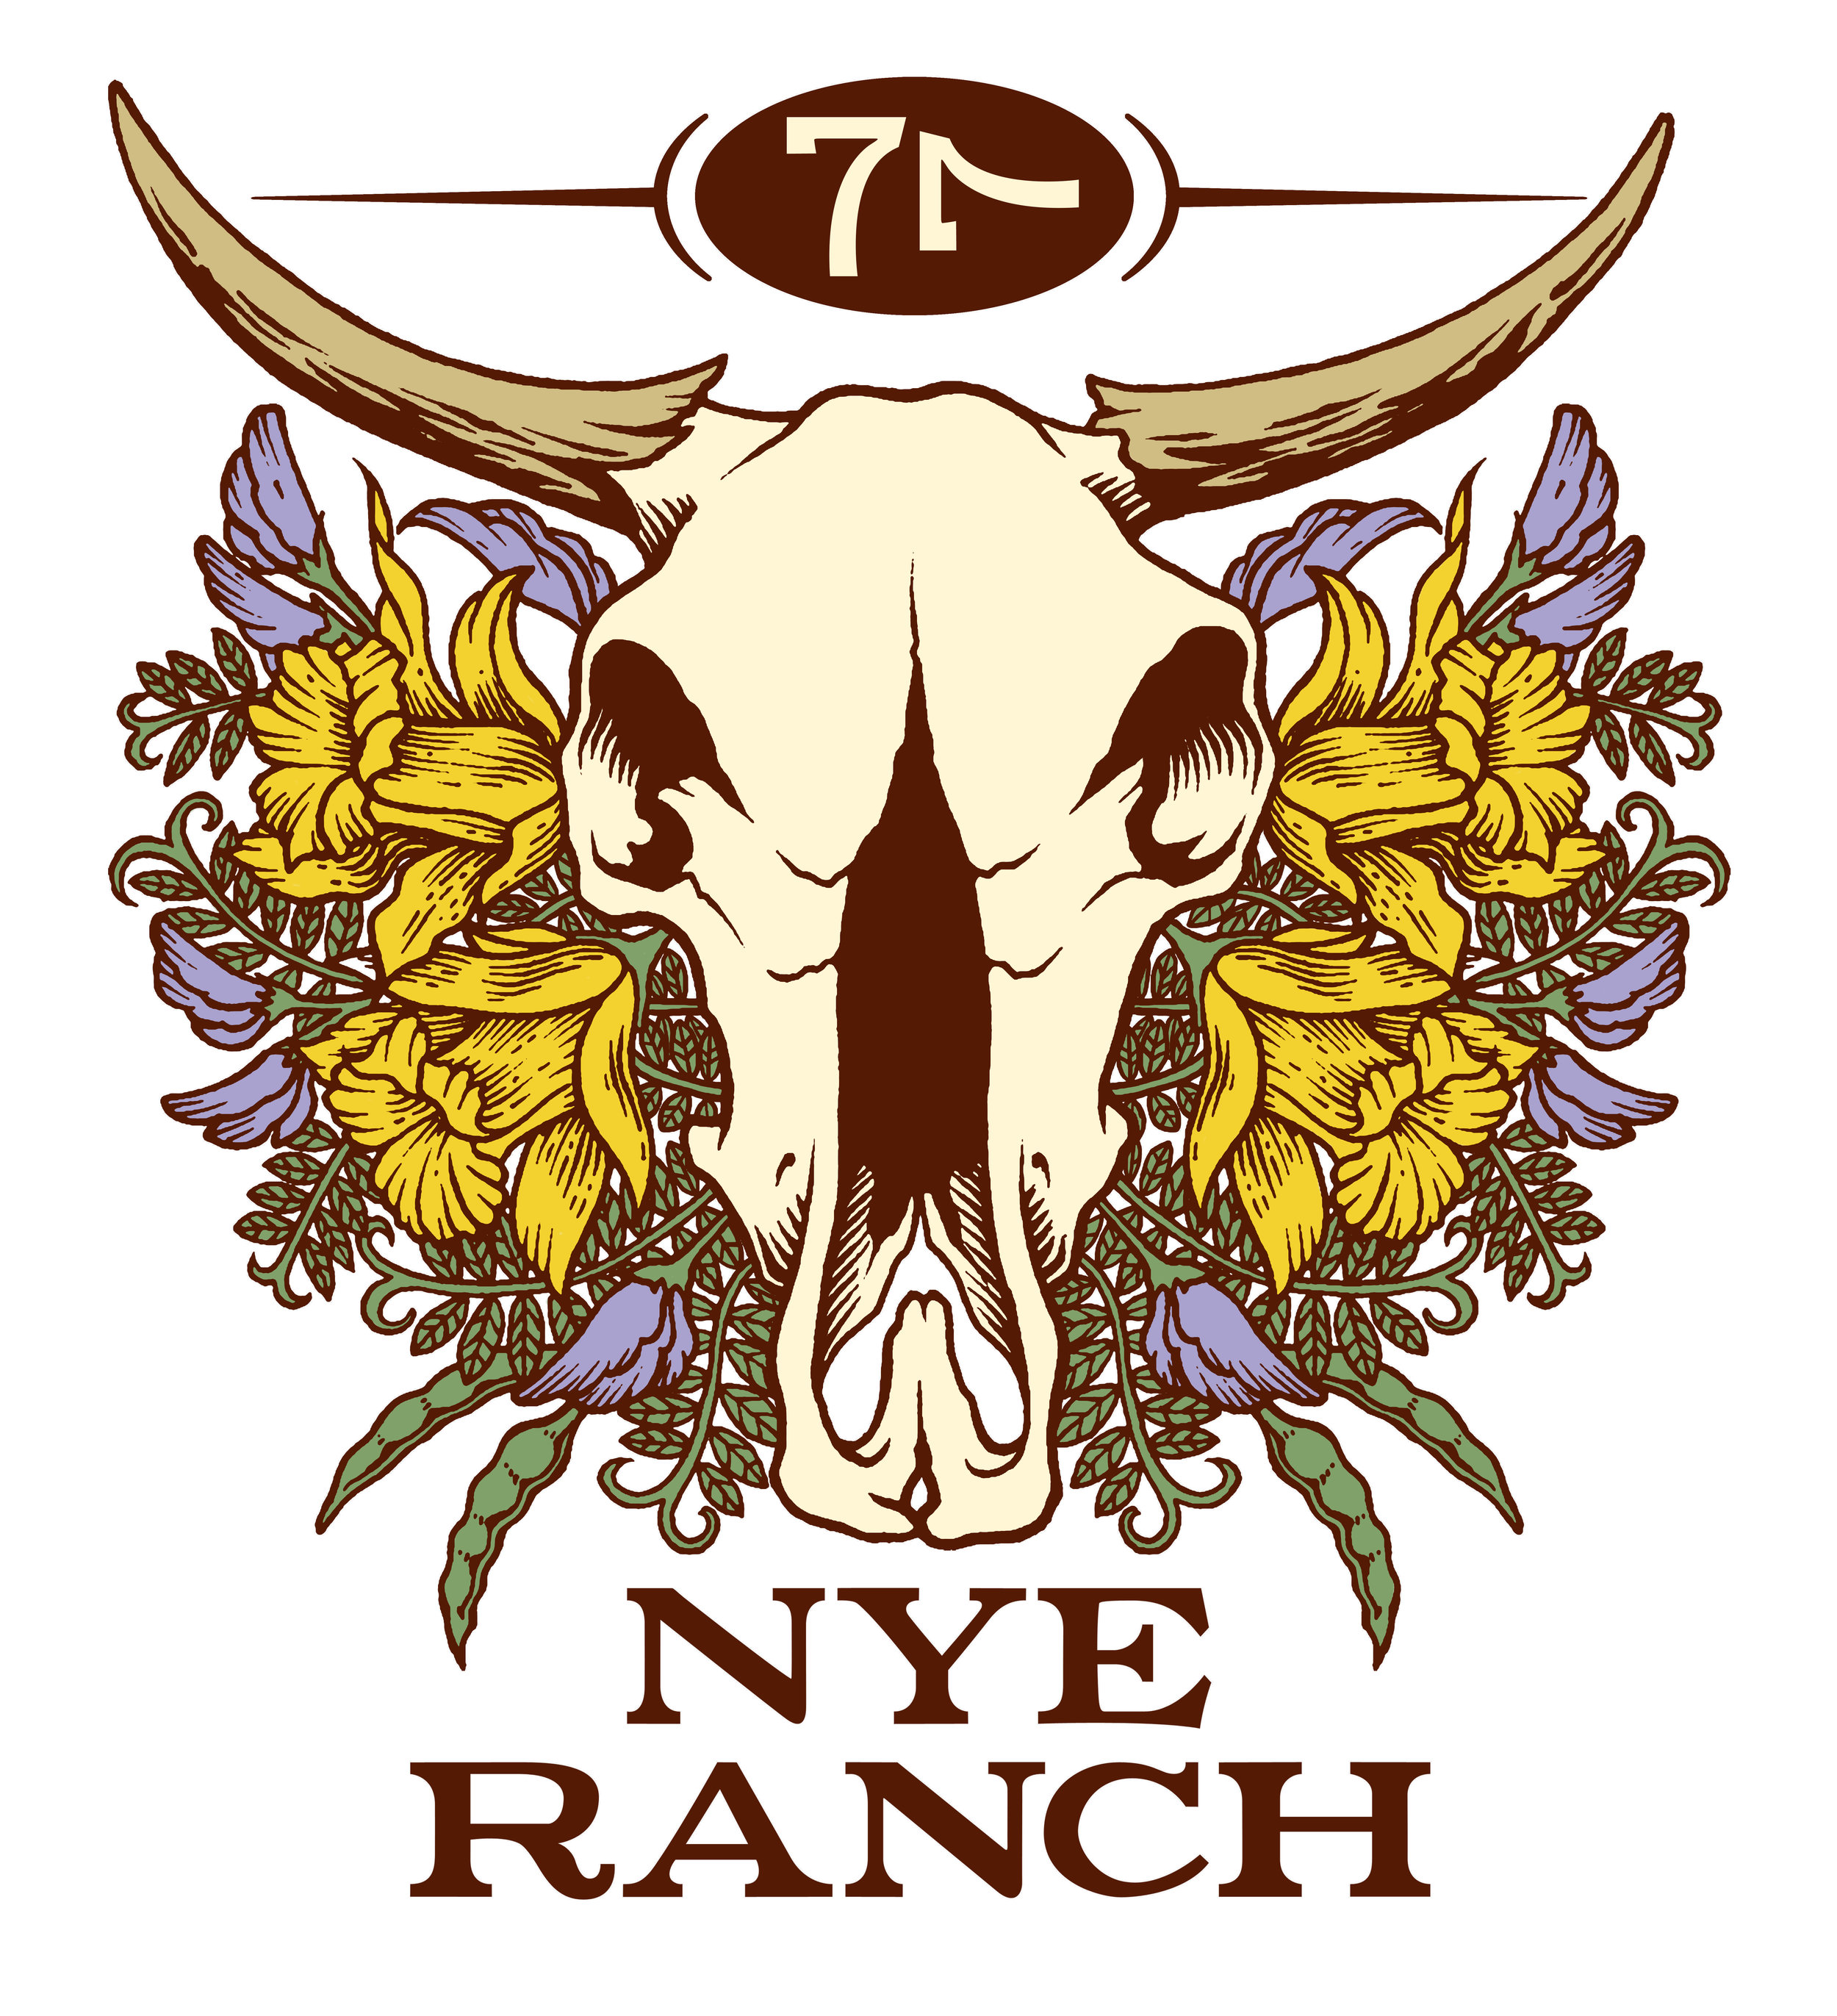 Nye Ranch